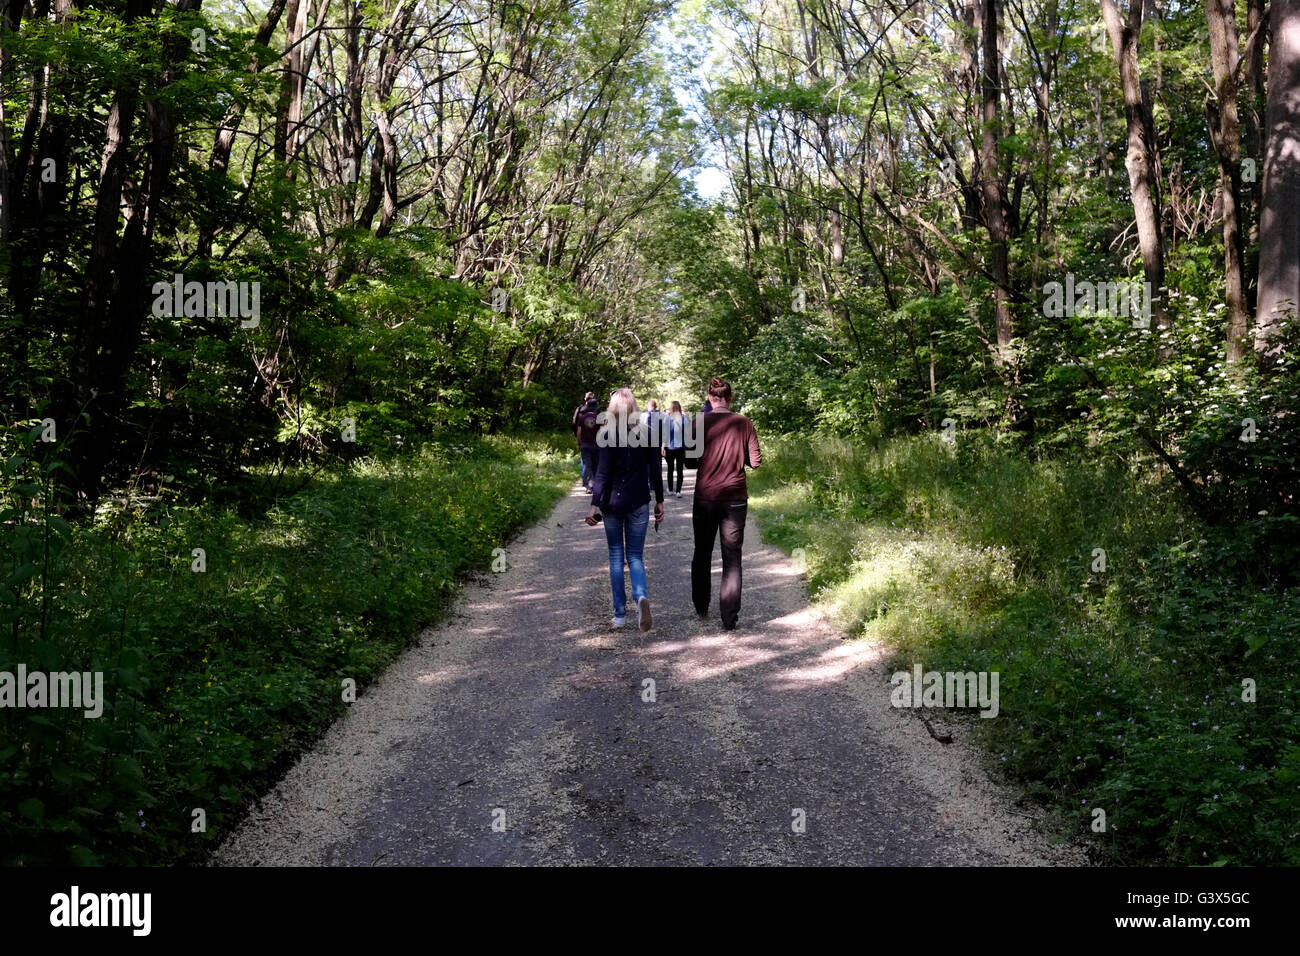 Group of tourists walking in a forest in Chernobyl, Ukraine on 04 June 2016. The Chernobyl accident occurred on - Stock Image